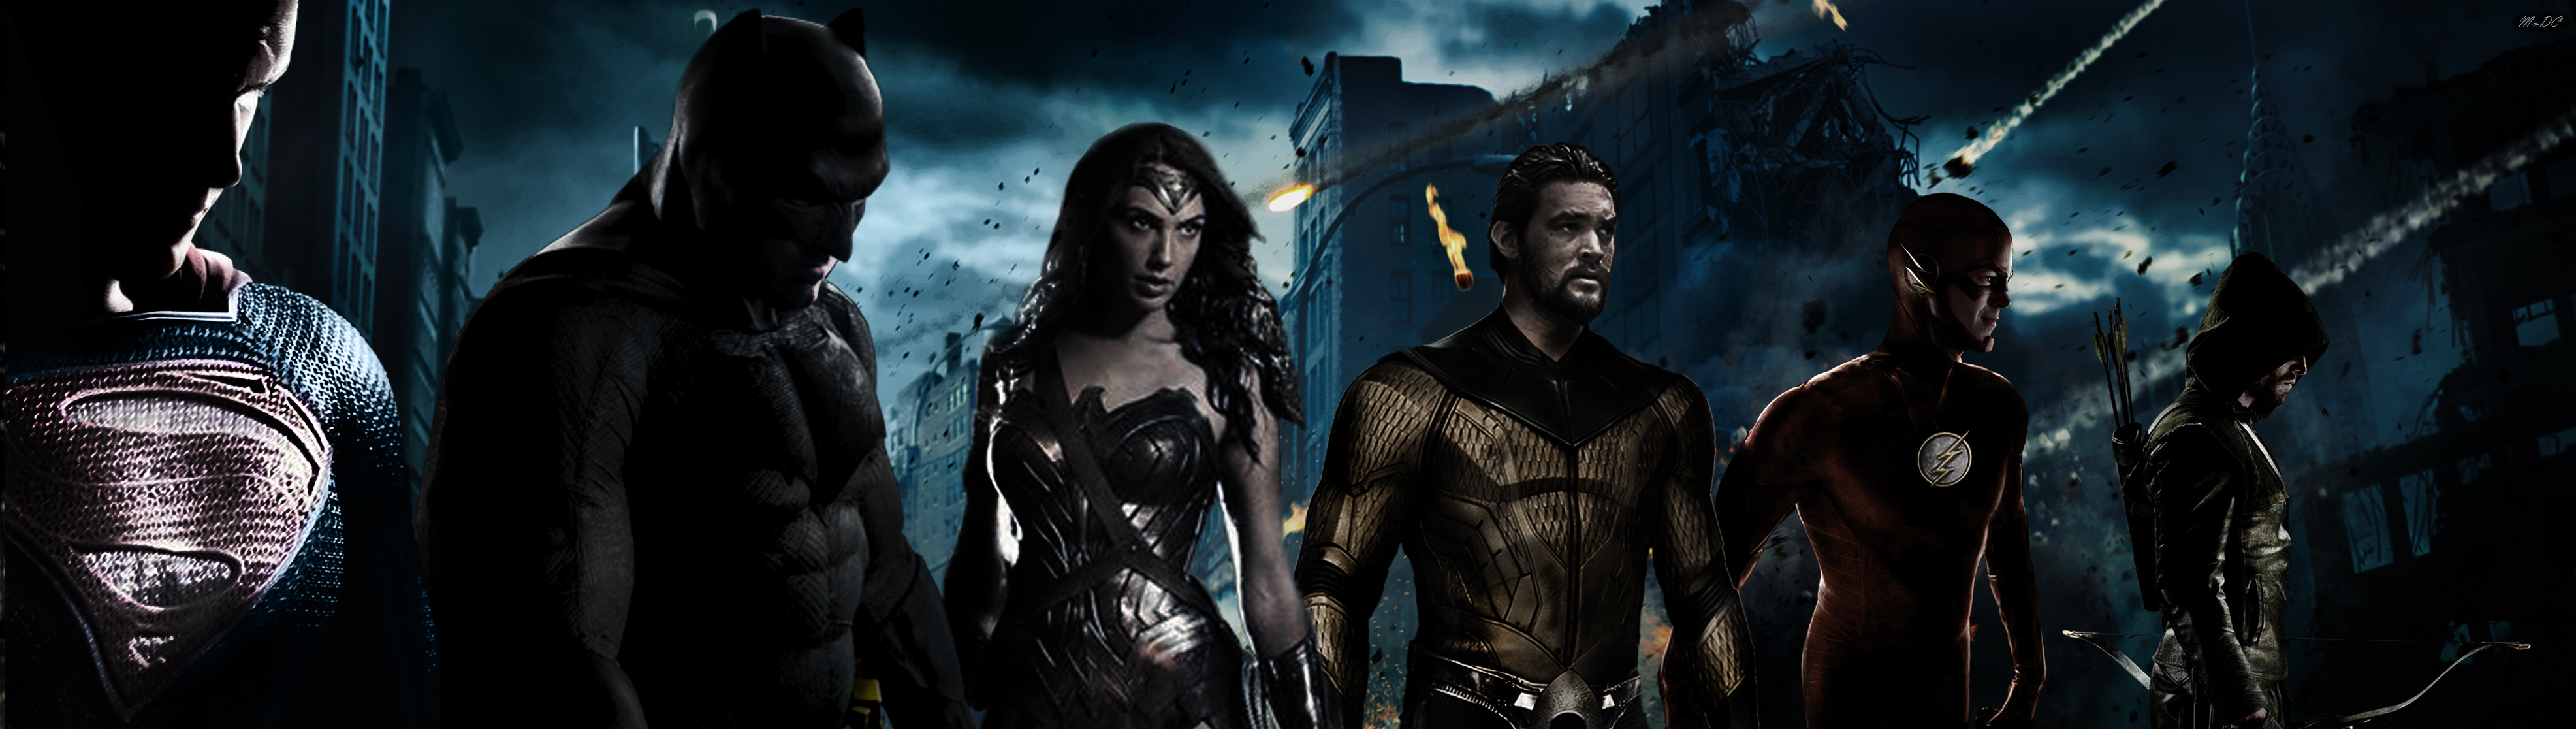 Justice League 'City under Attack' Banner by fmirza95